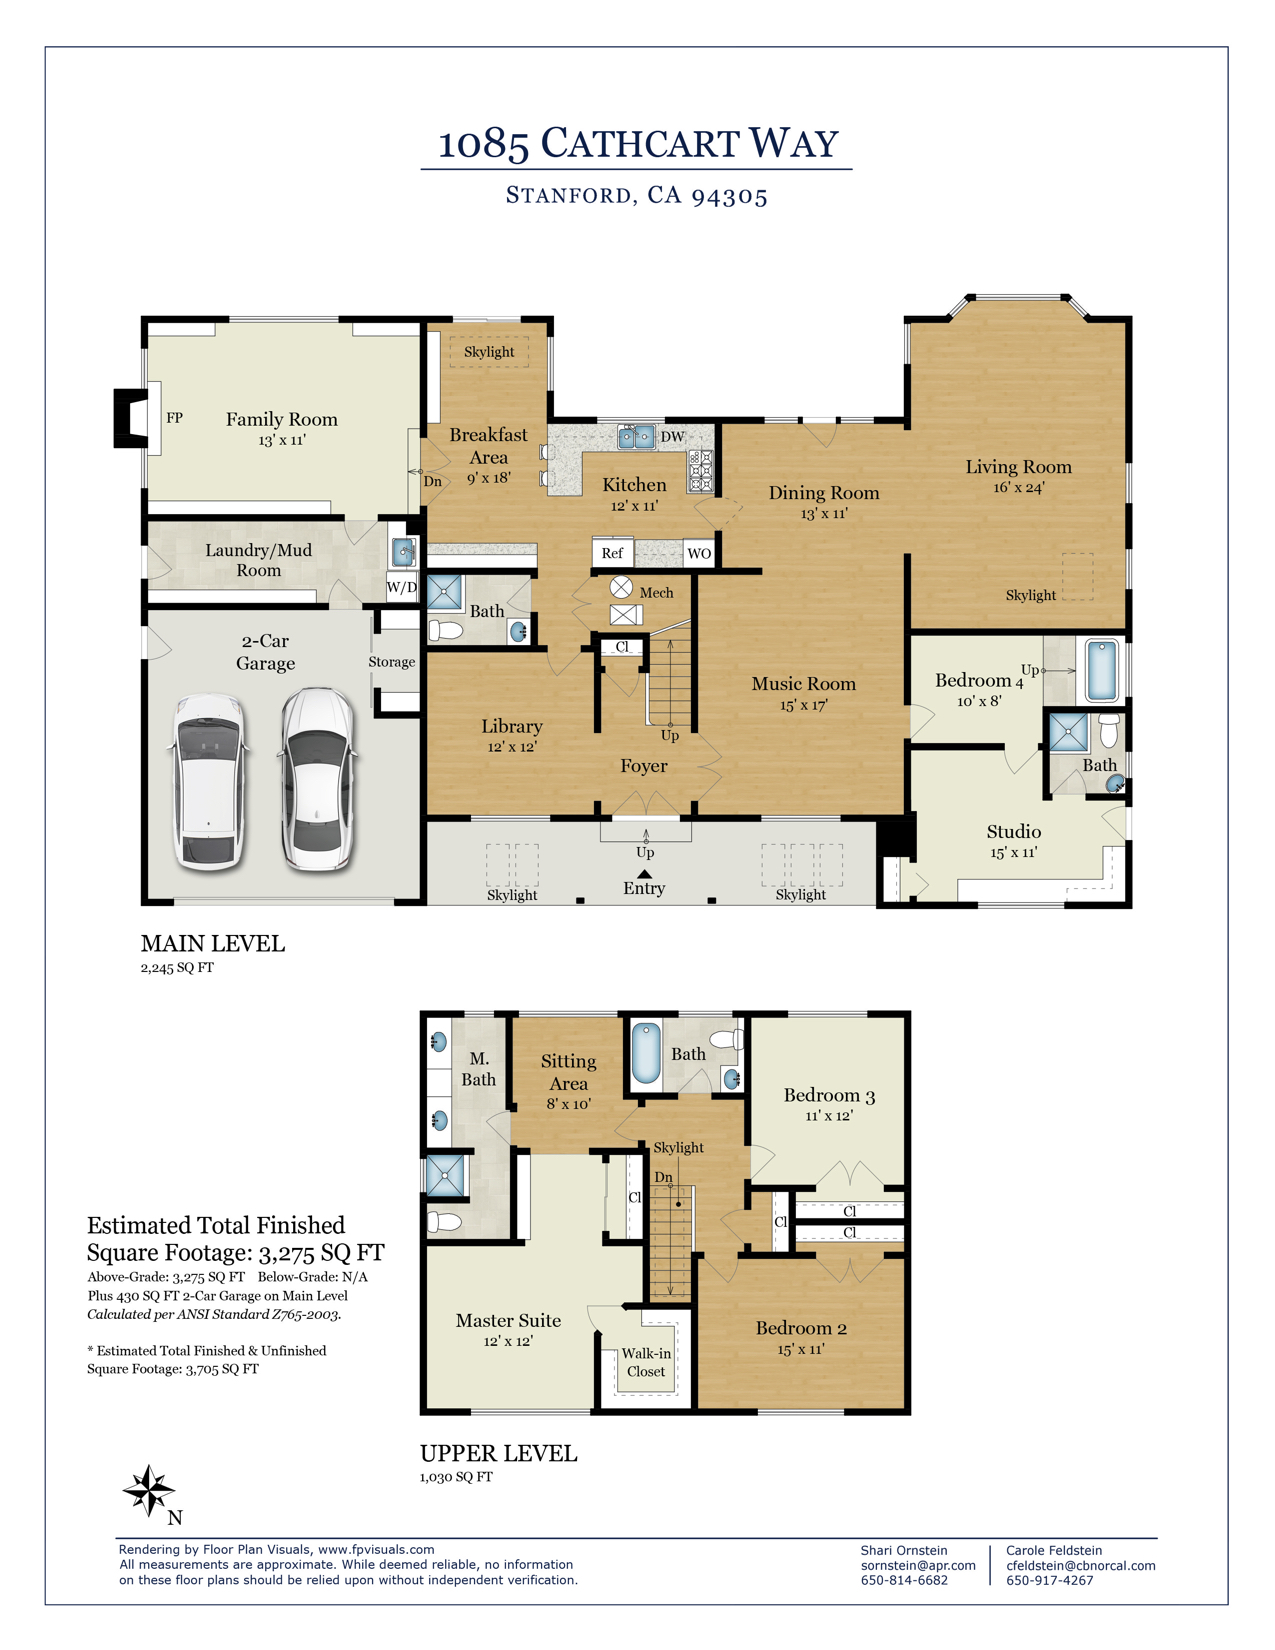 SO-1085CathcartWay-FloorPlan-Print-R1.jpg